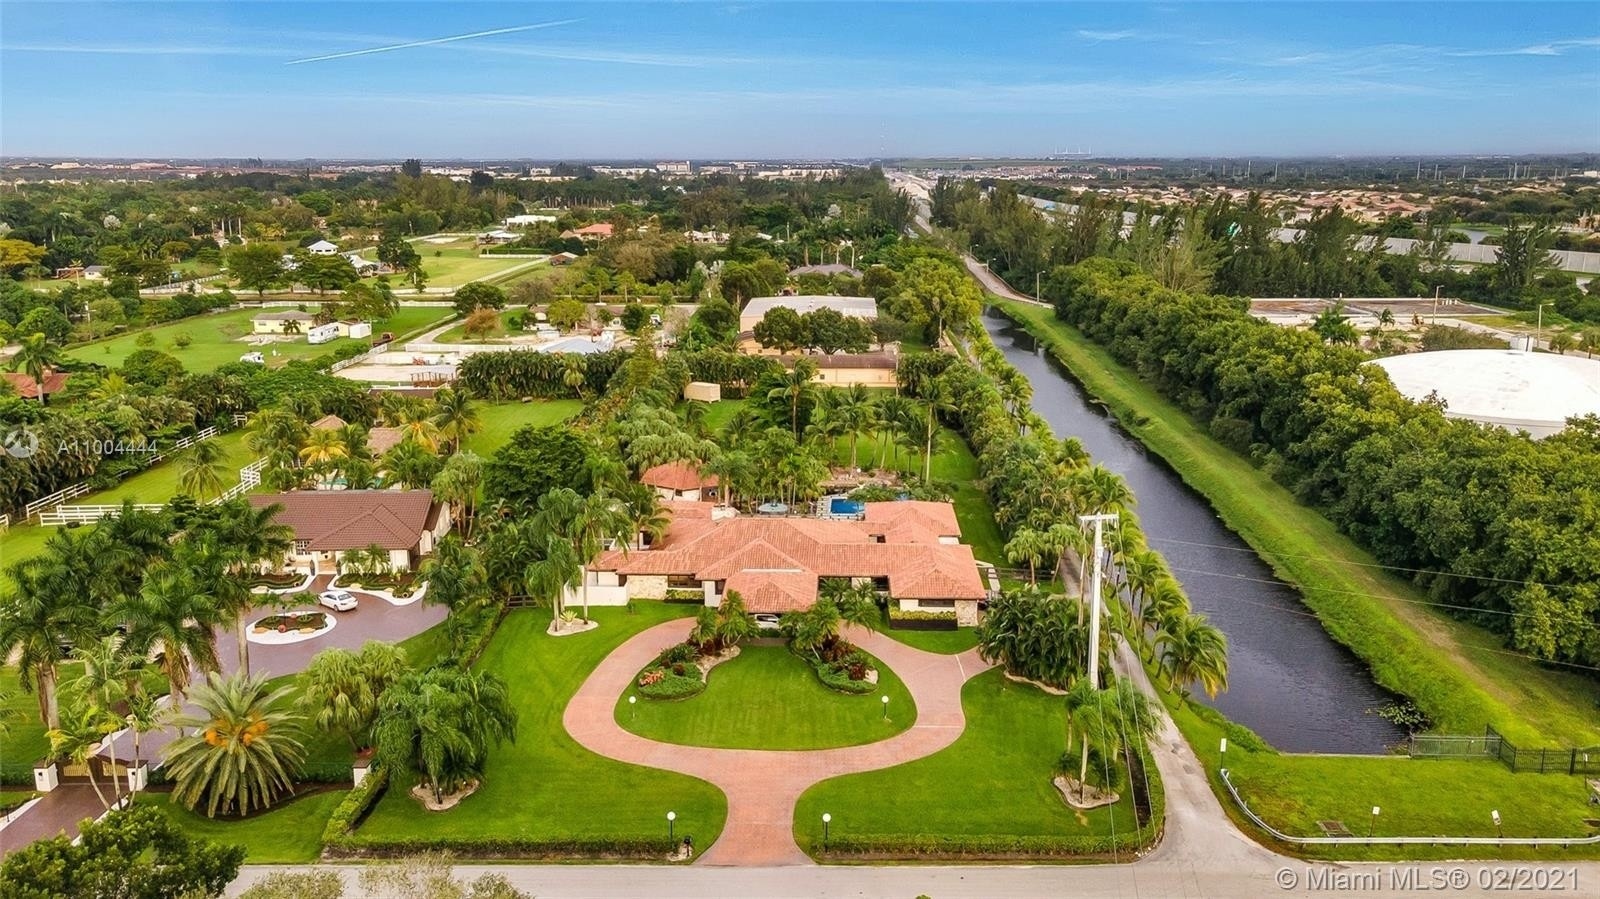 單親家庭 為 特賣 在 Country Club Ranches, Miramar, FL 33027